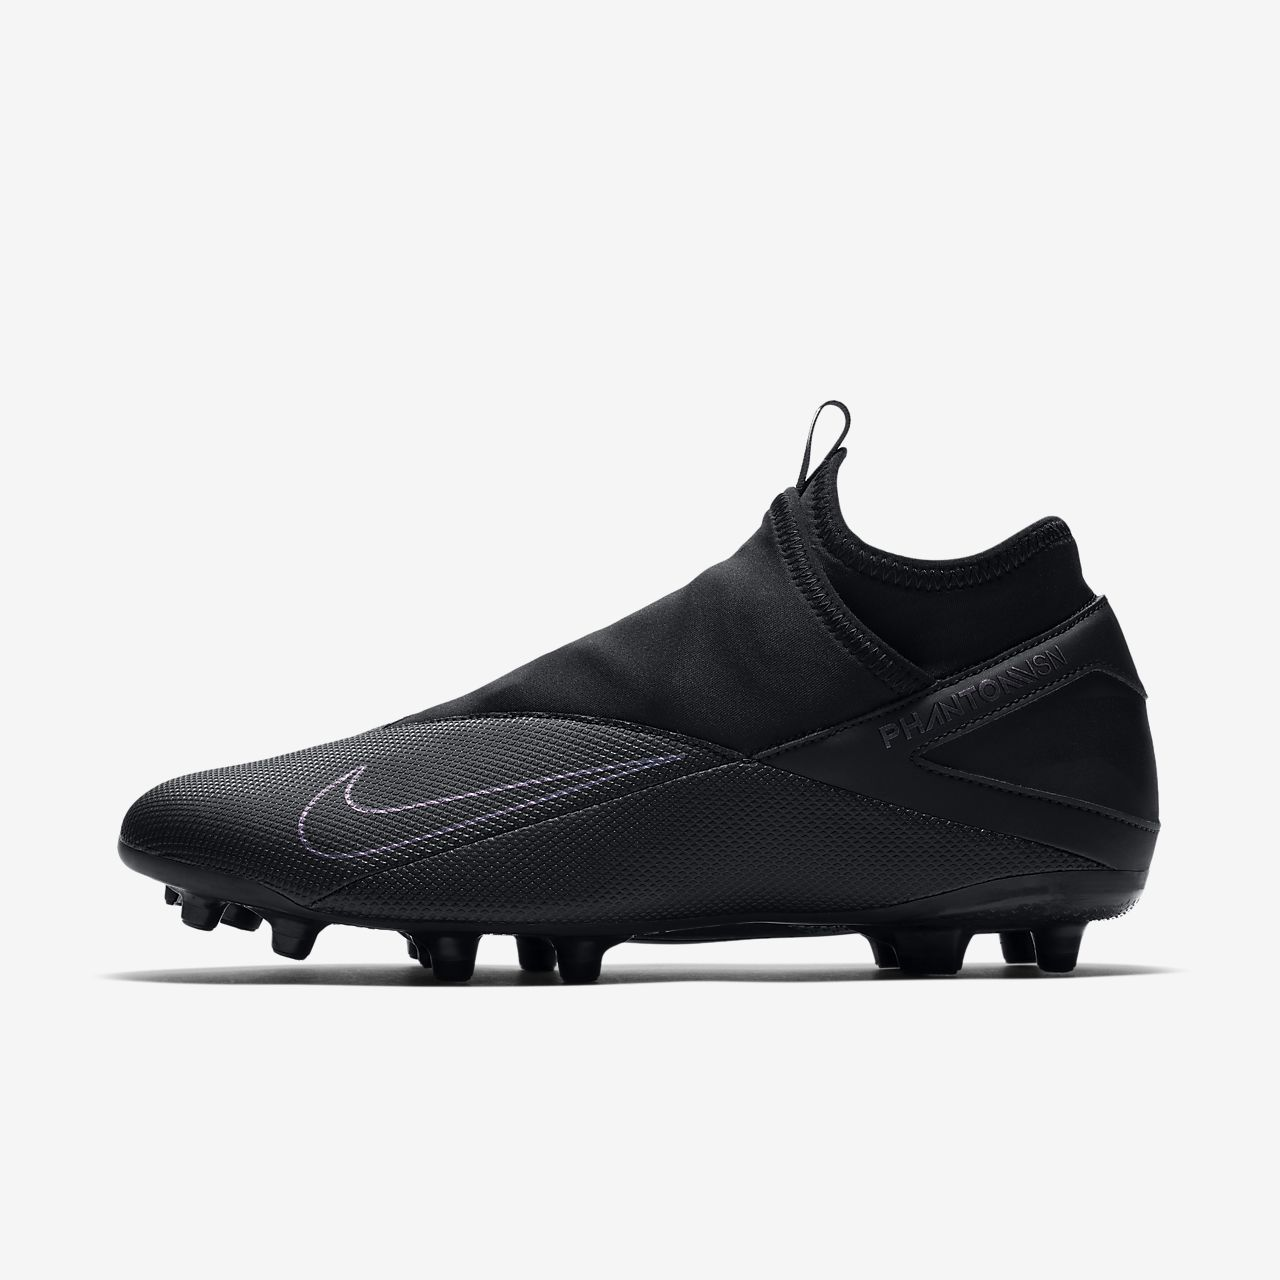 Nike Phantom Vision 2 Club Dynamic Fit MG Multi-Ground Soccer Cleat